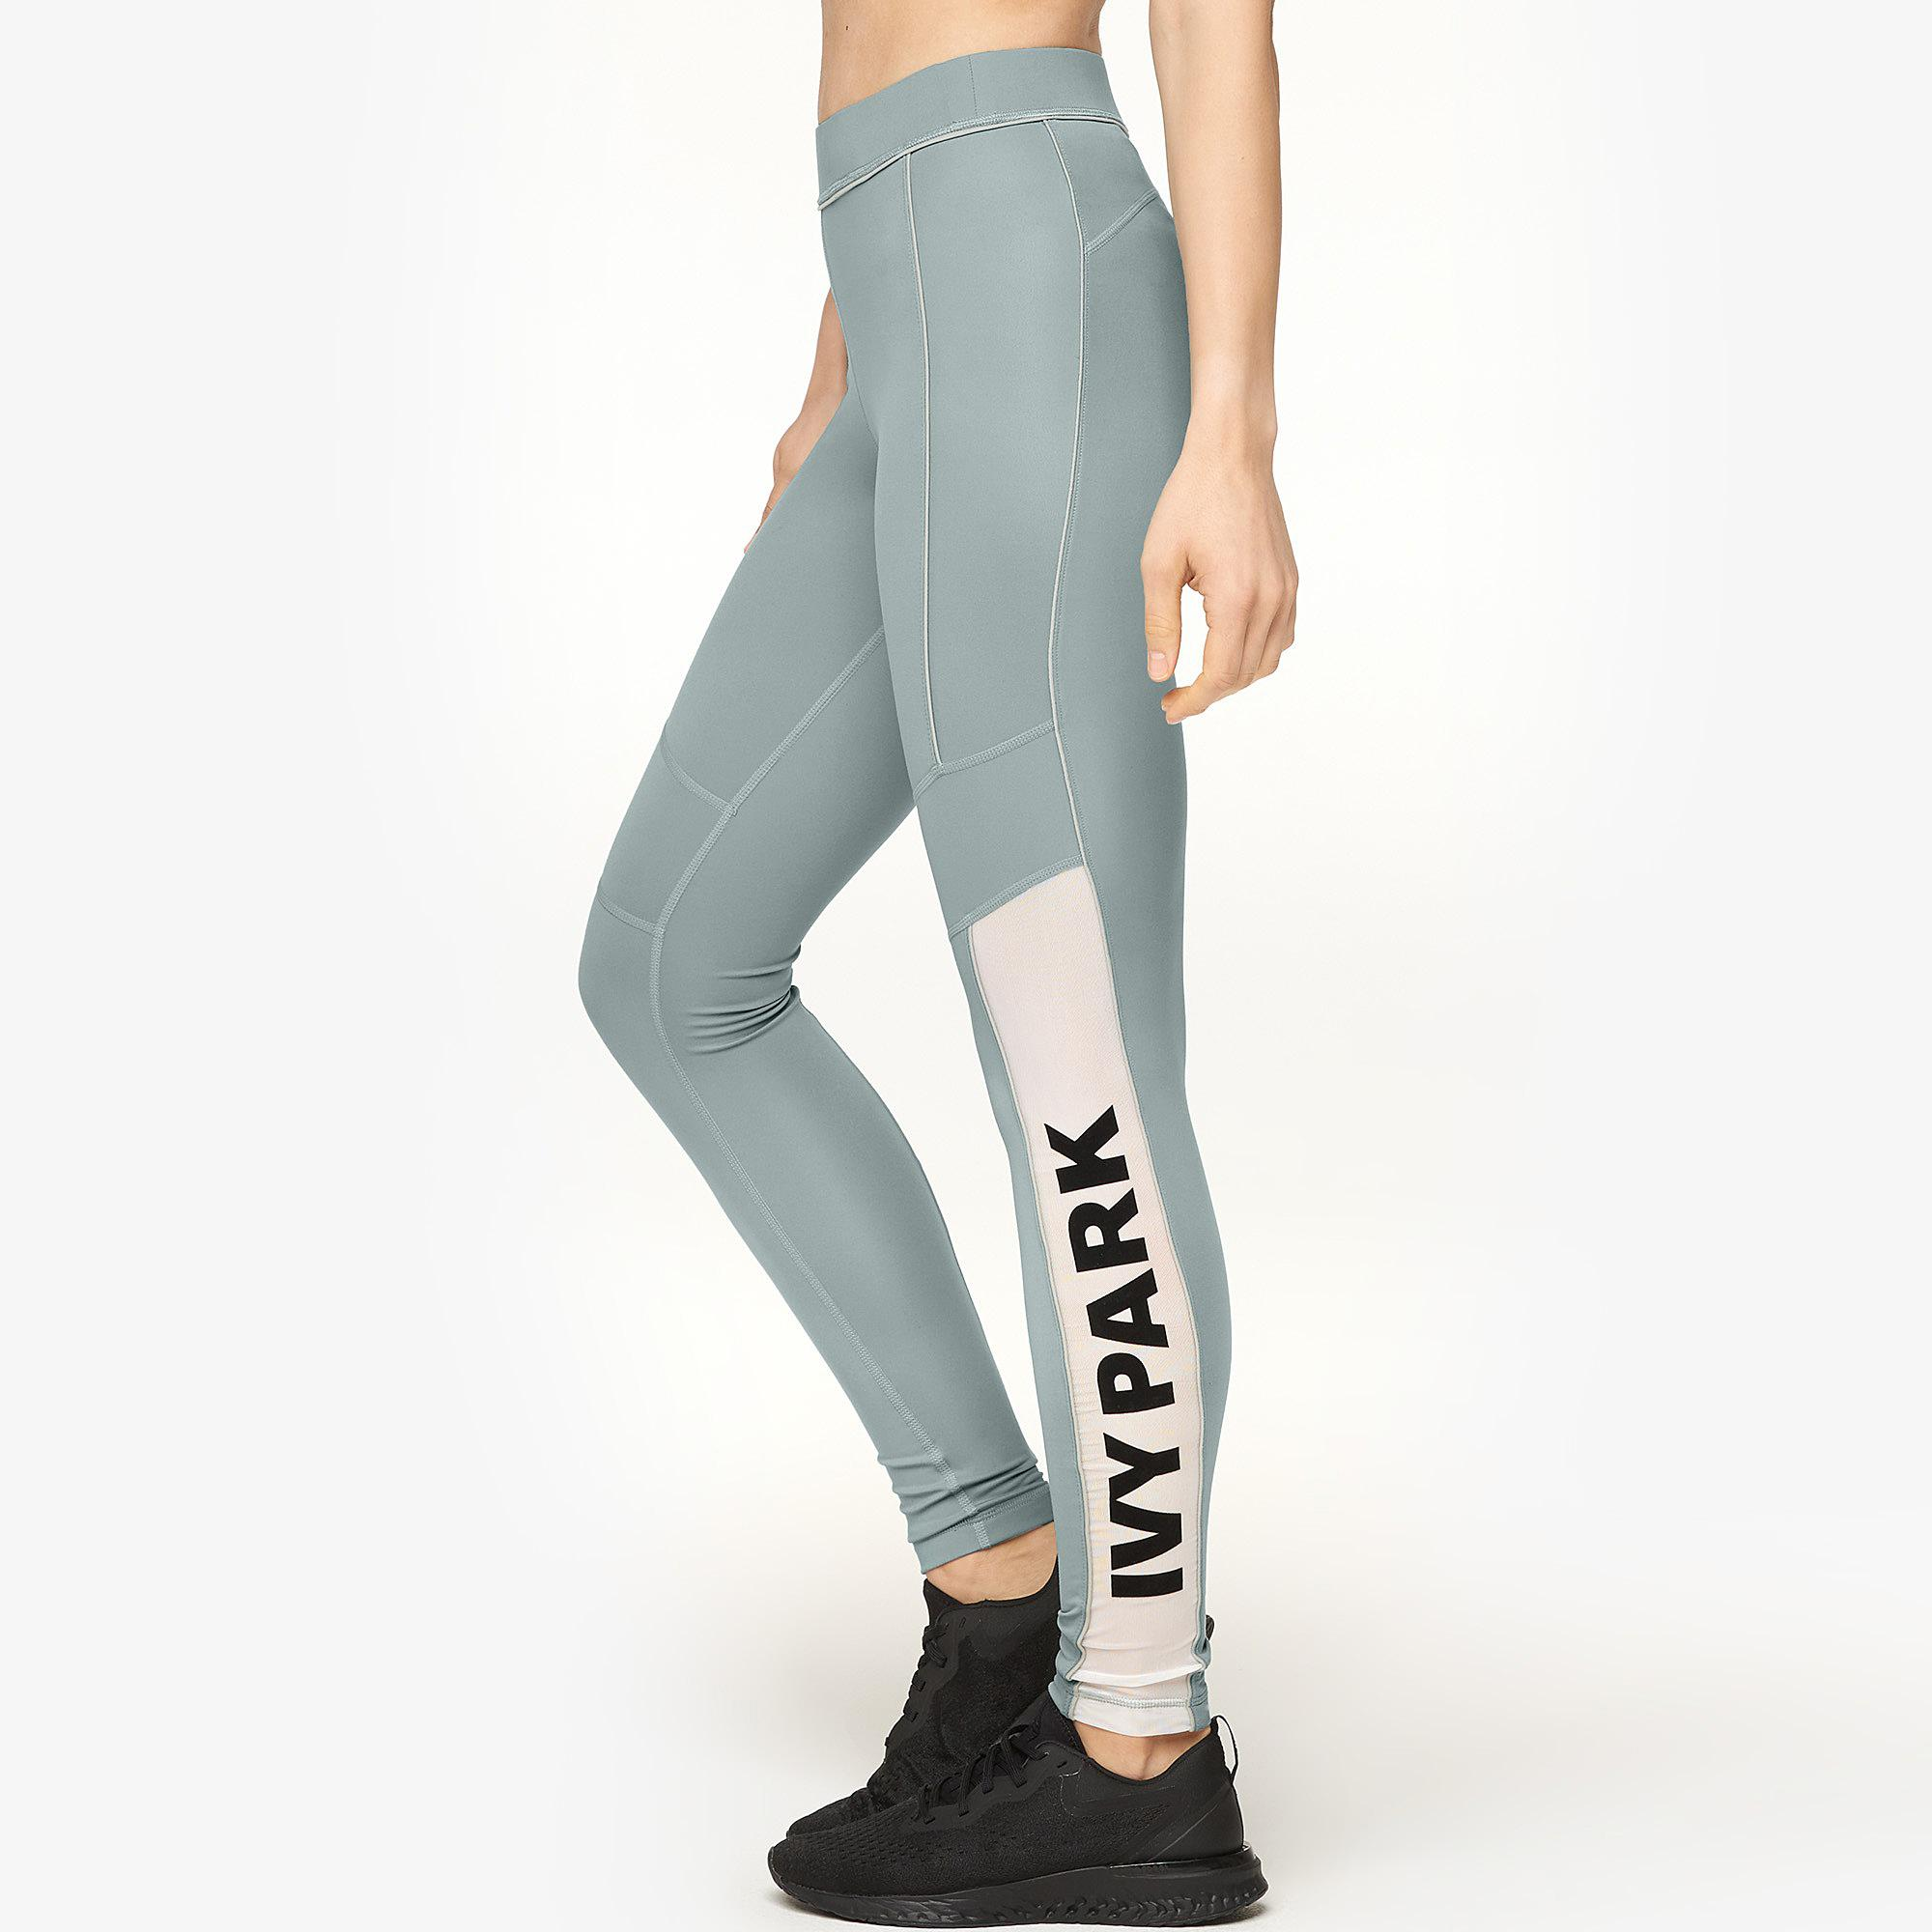 d7badc1da59e04 Ivy Park - Green Sheer Flocked Logo Leggings - Lyst. View fullscreen